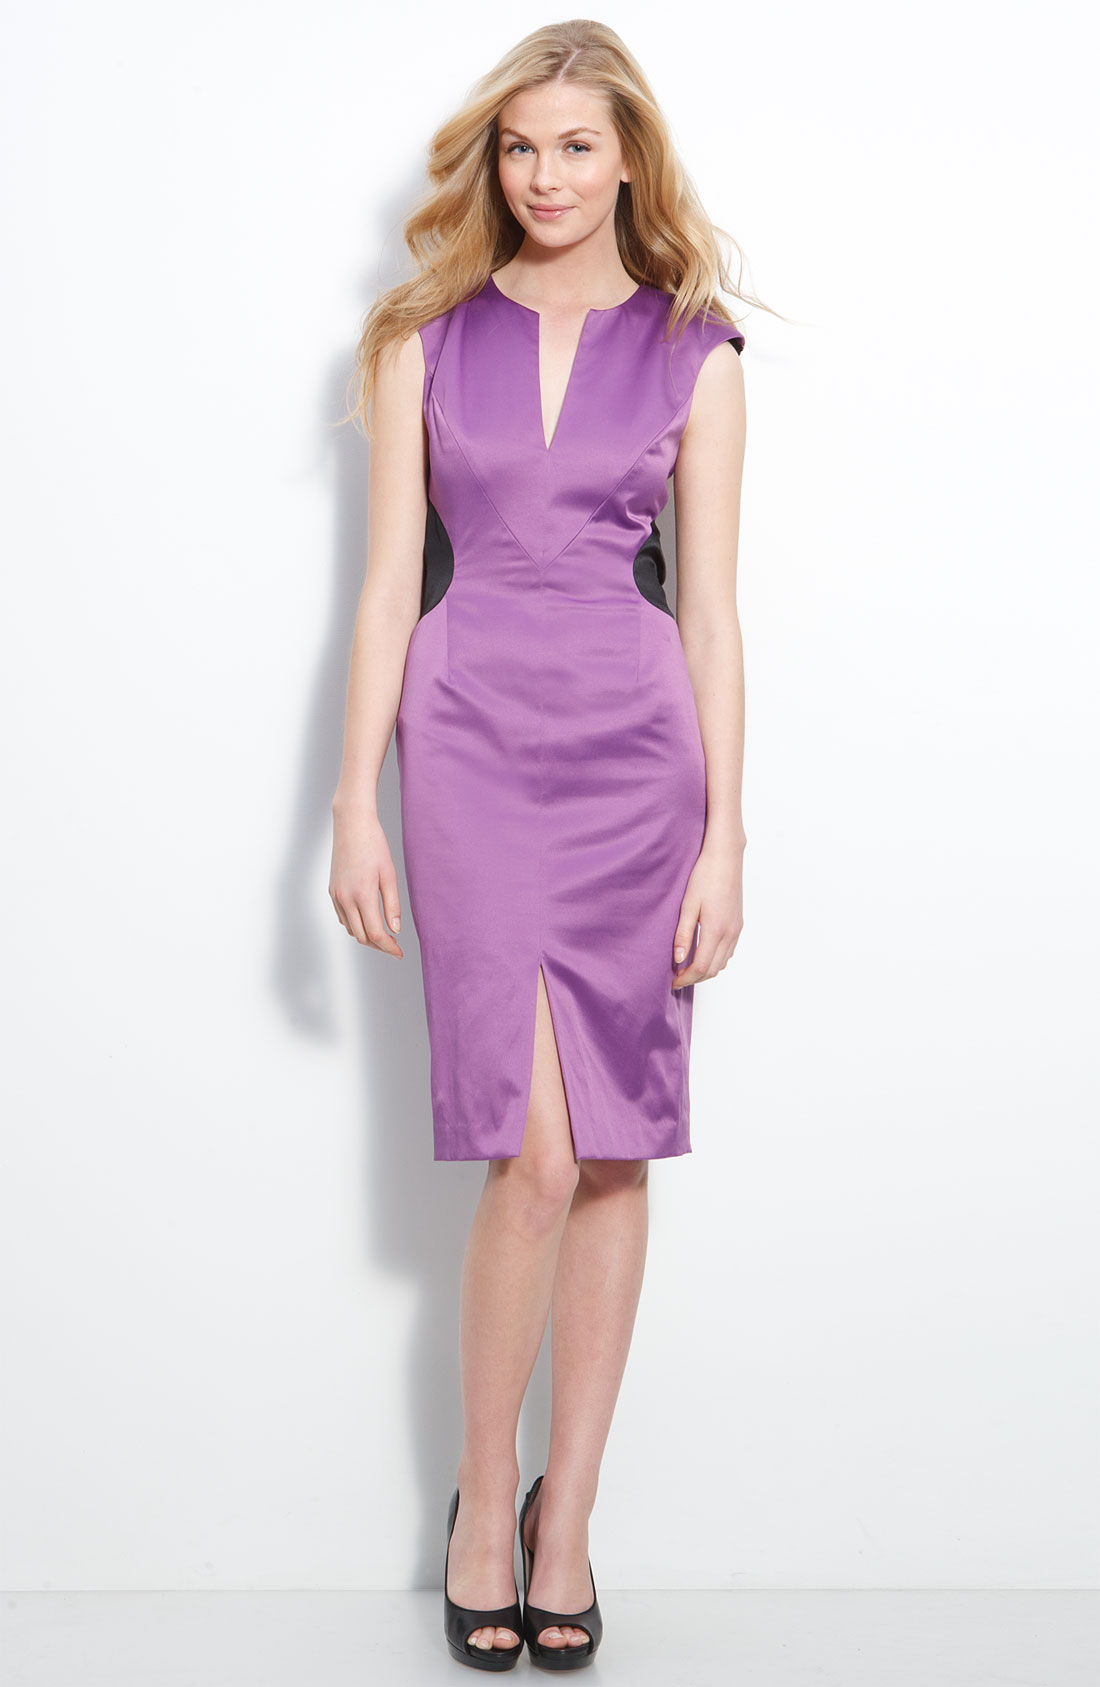 Black Halo Suki Open Back Stretch Satin Dress In Purple